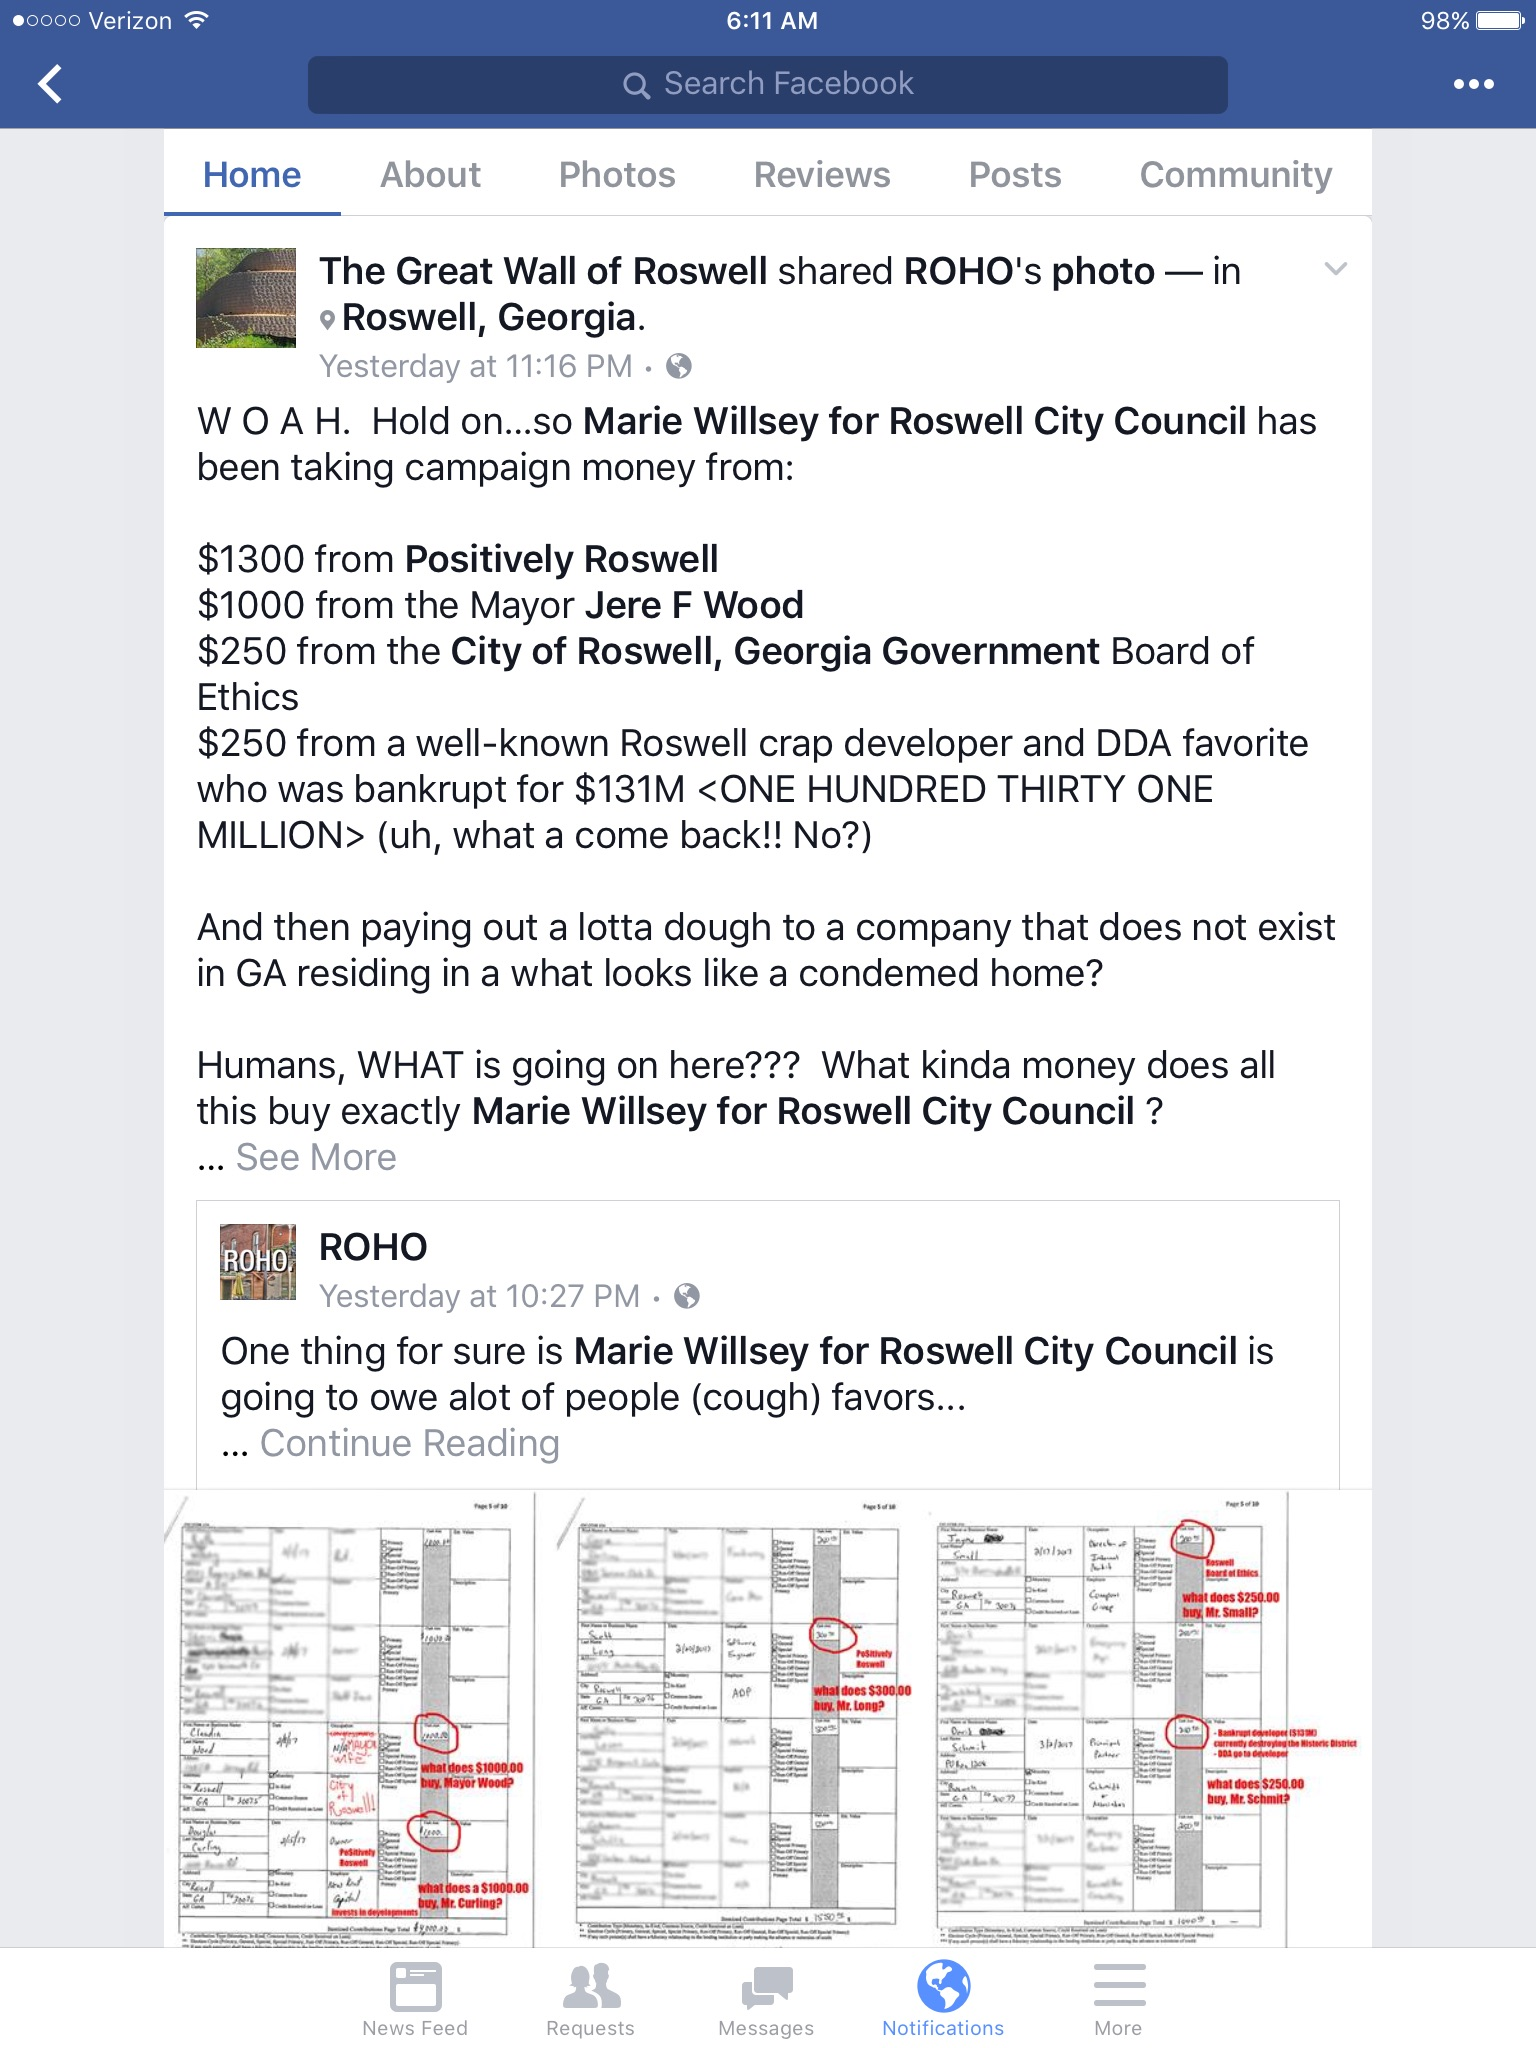 This group has since amended this post, but their tactics are clear to disparage our organization and Marie Willsey.